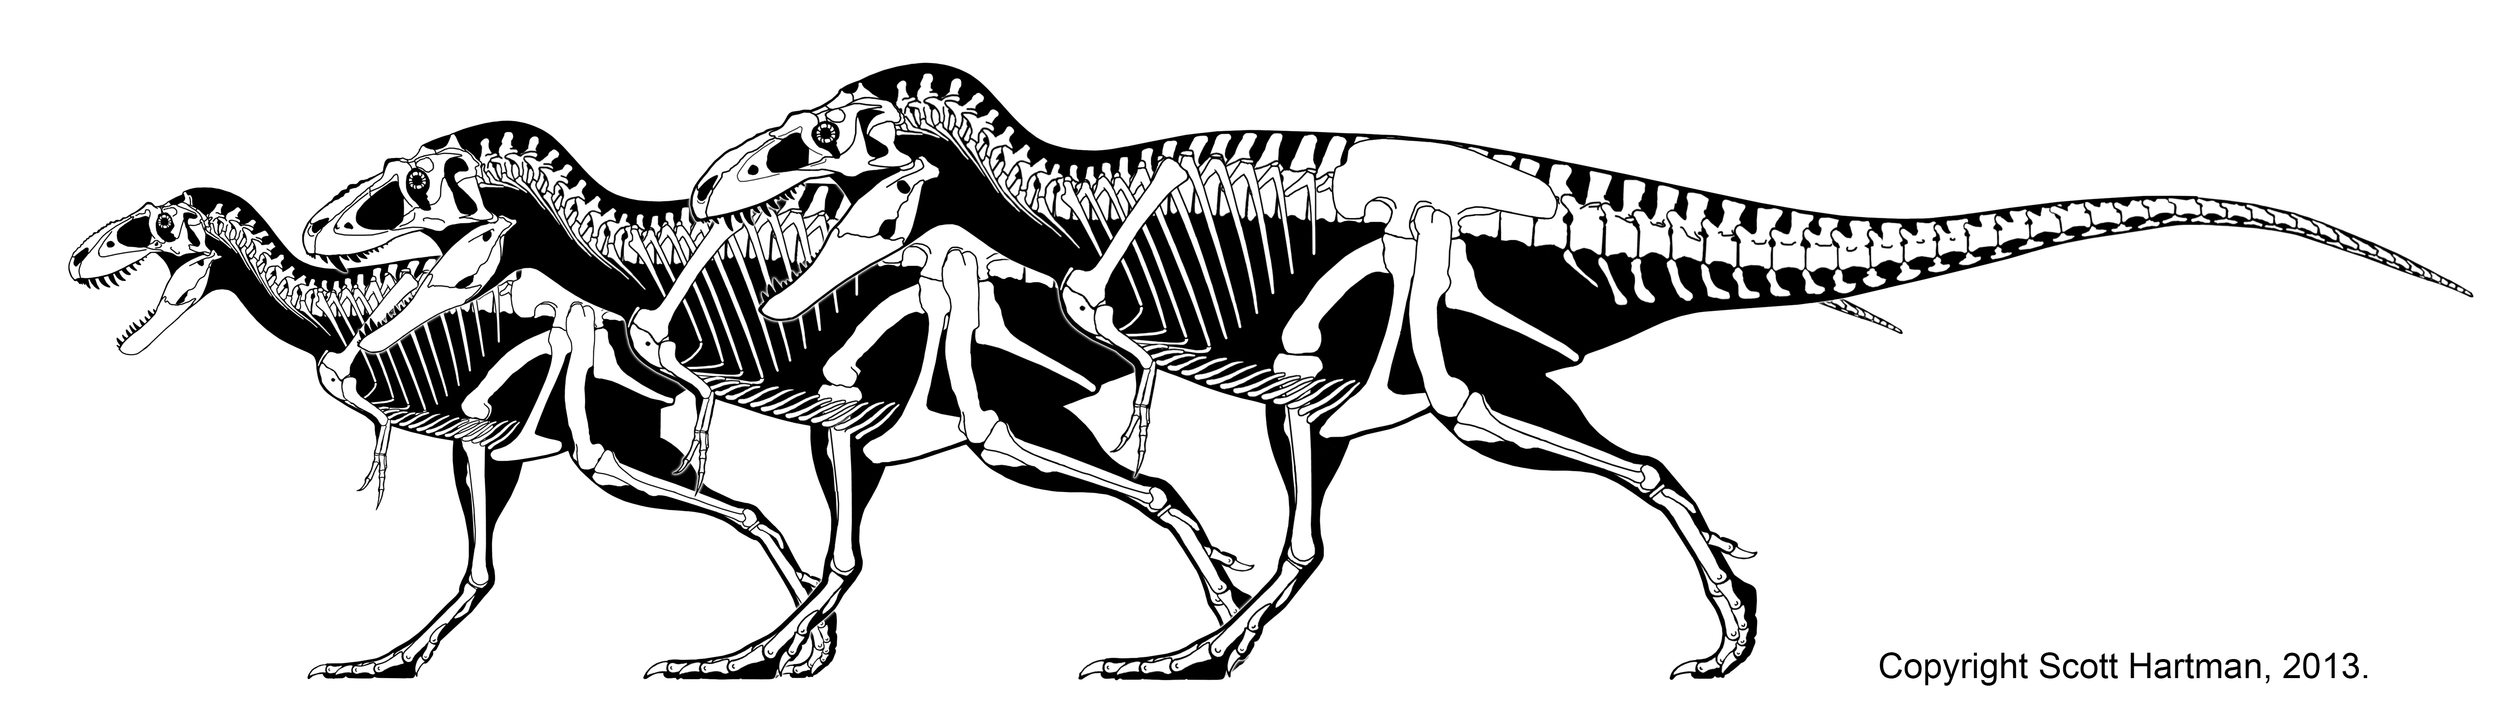 From left to right:  Teratophoneus, Lythronax, & Bistahieversor